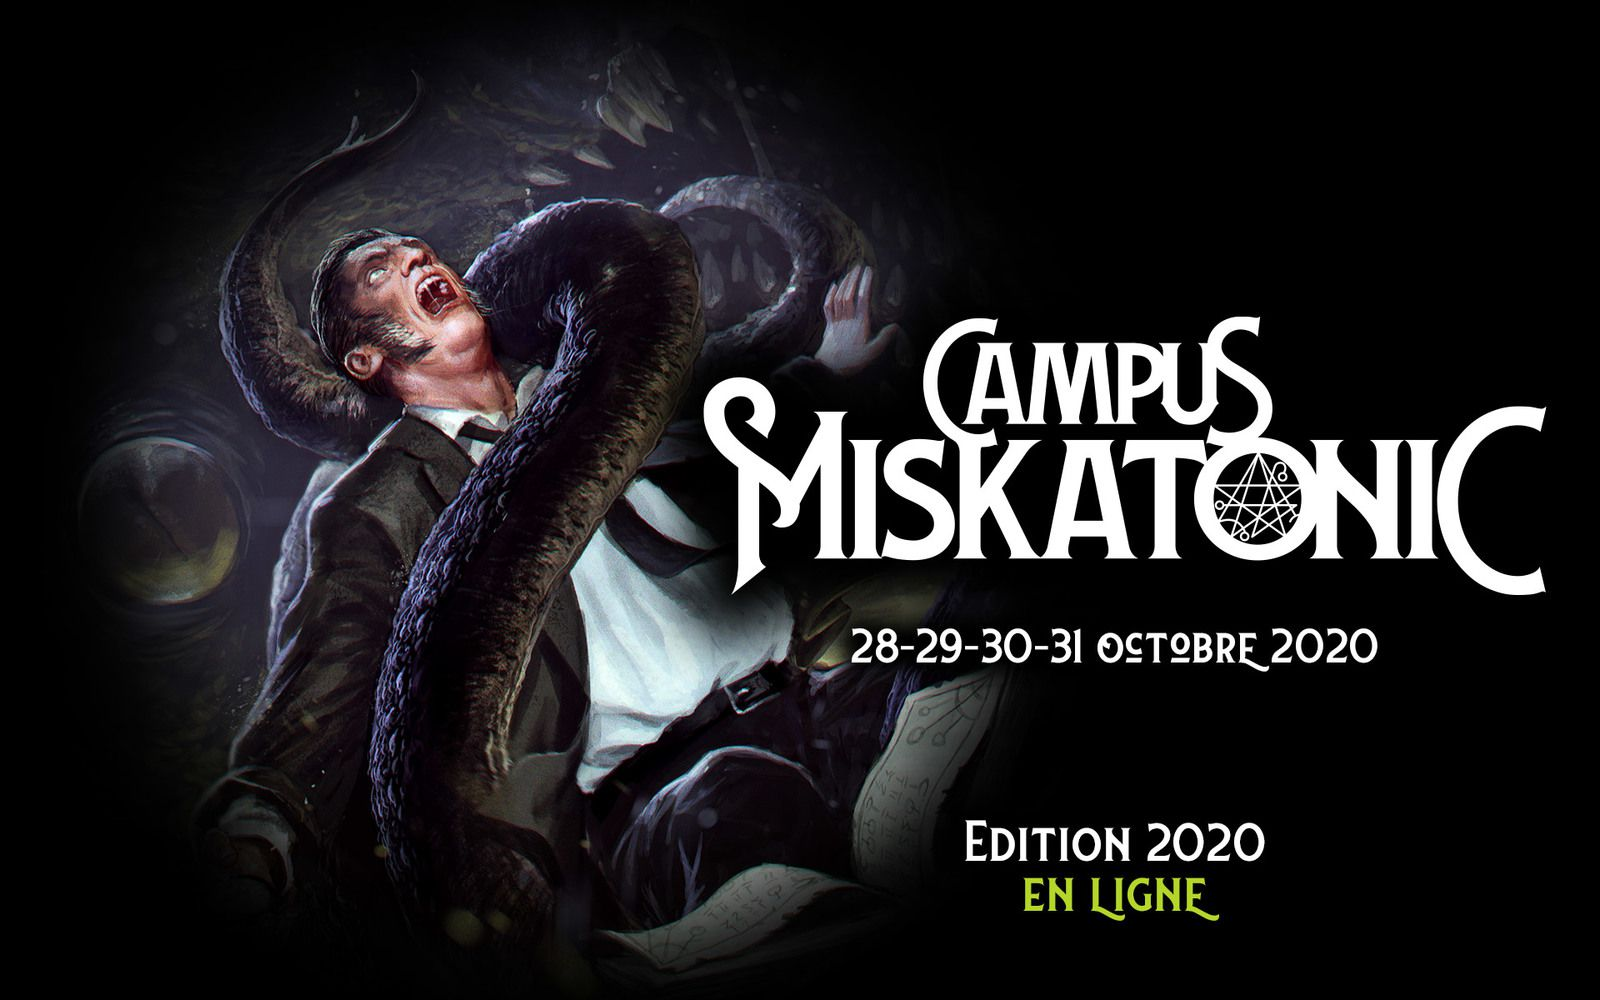 CAMPUS MISKATONIC | Le RDV des amateurs de Lovecraft